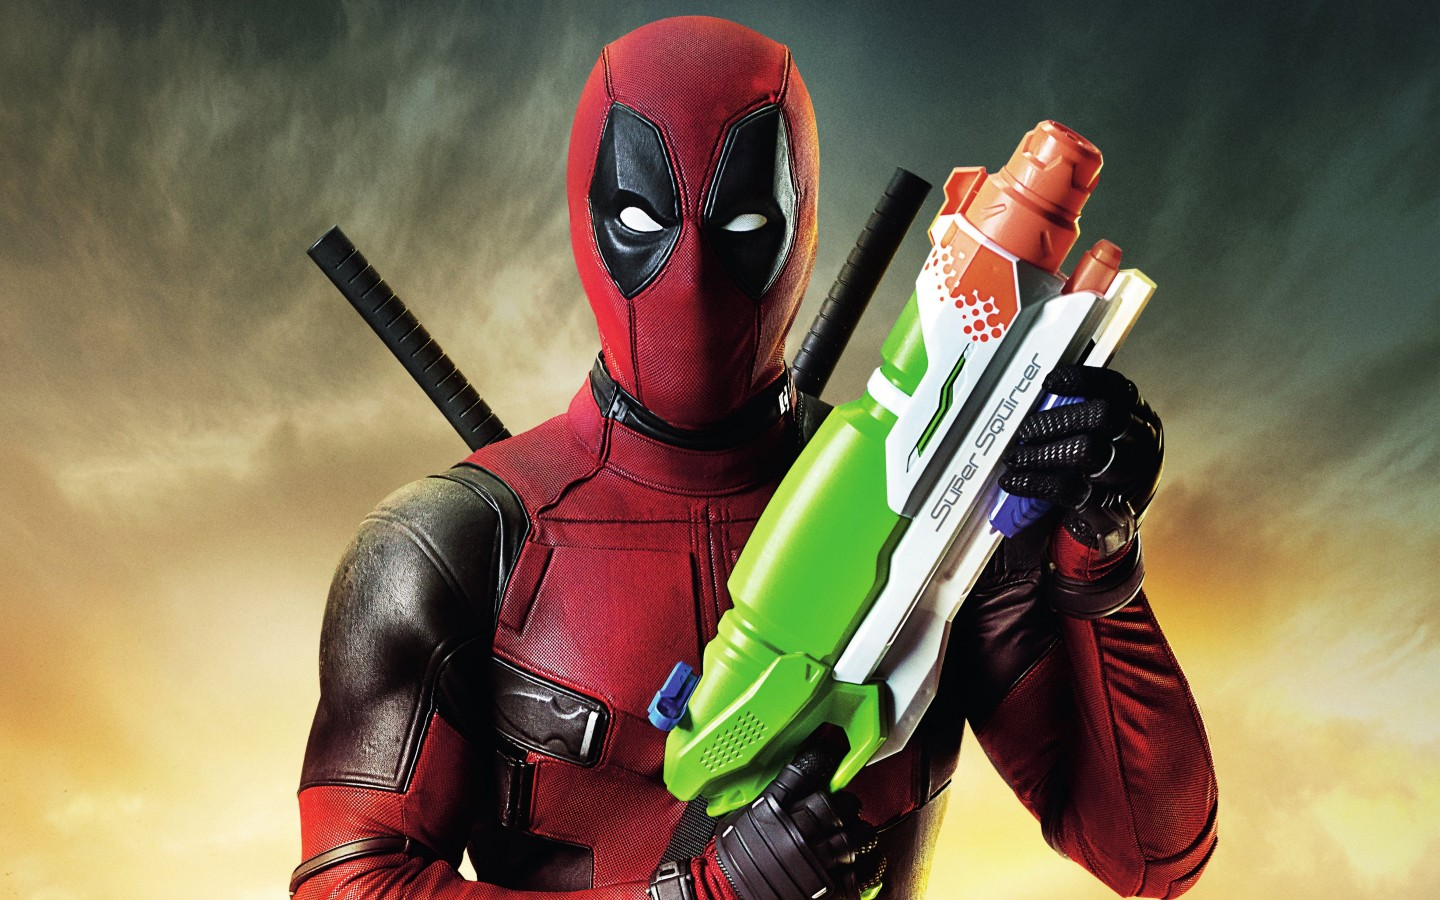 Super Cars And Bikes Hd Wallpapers Deadpool Super Squirter Wallpapers Hd Wallpapers Id 16637